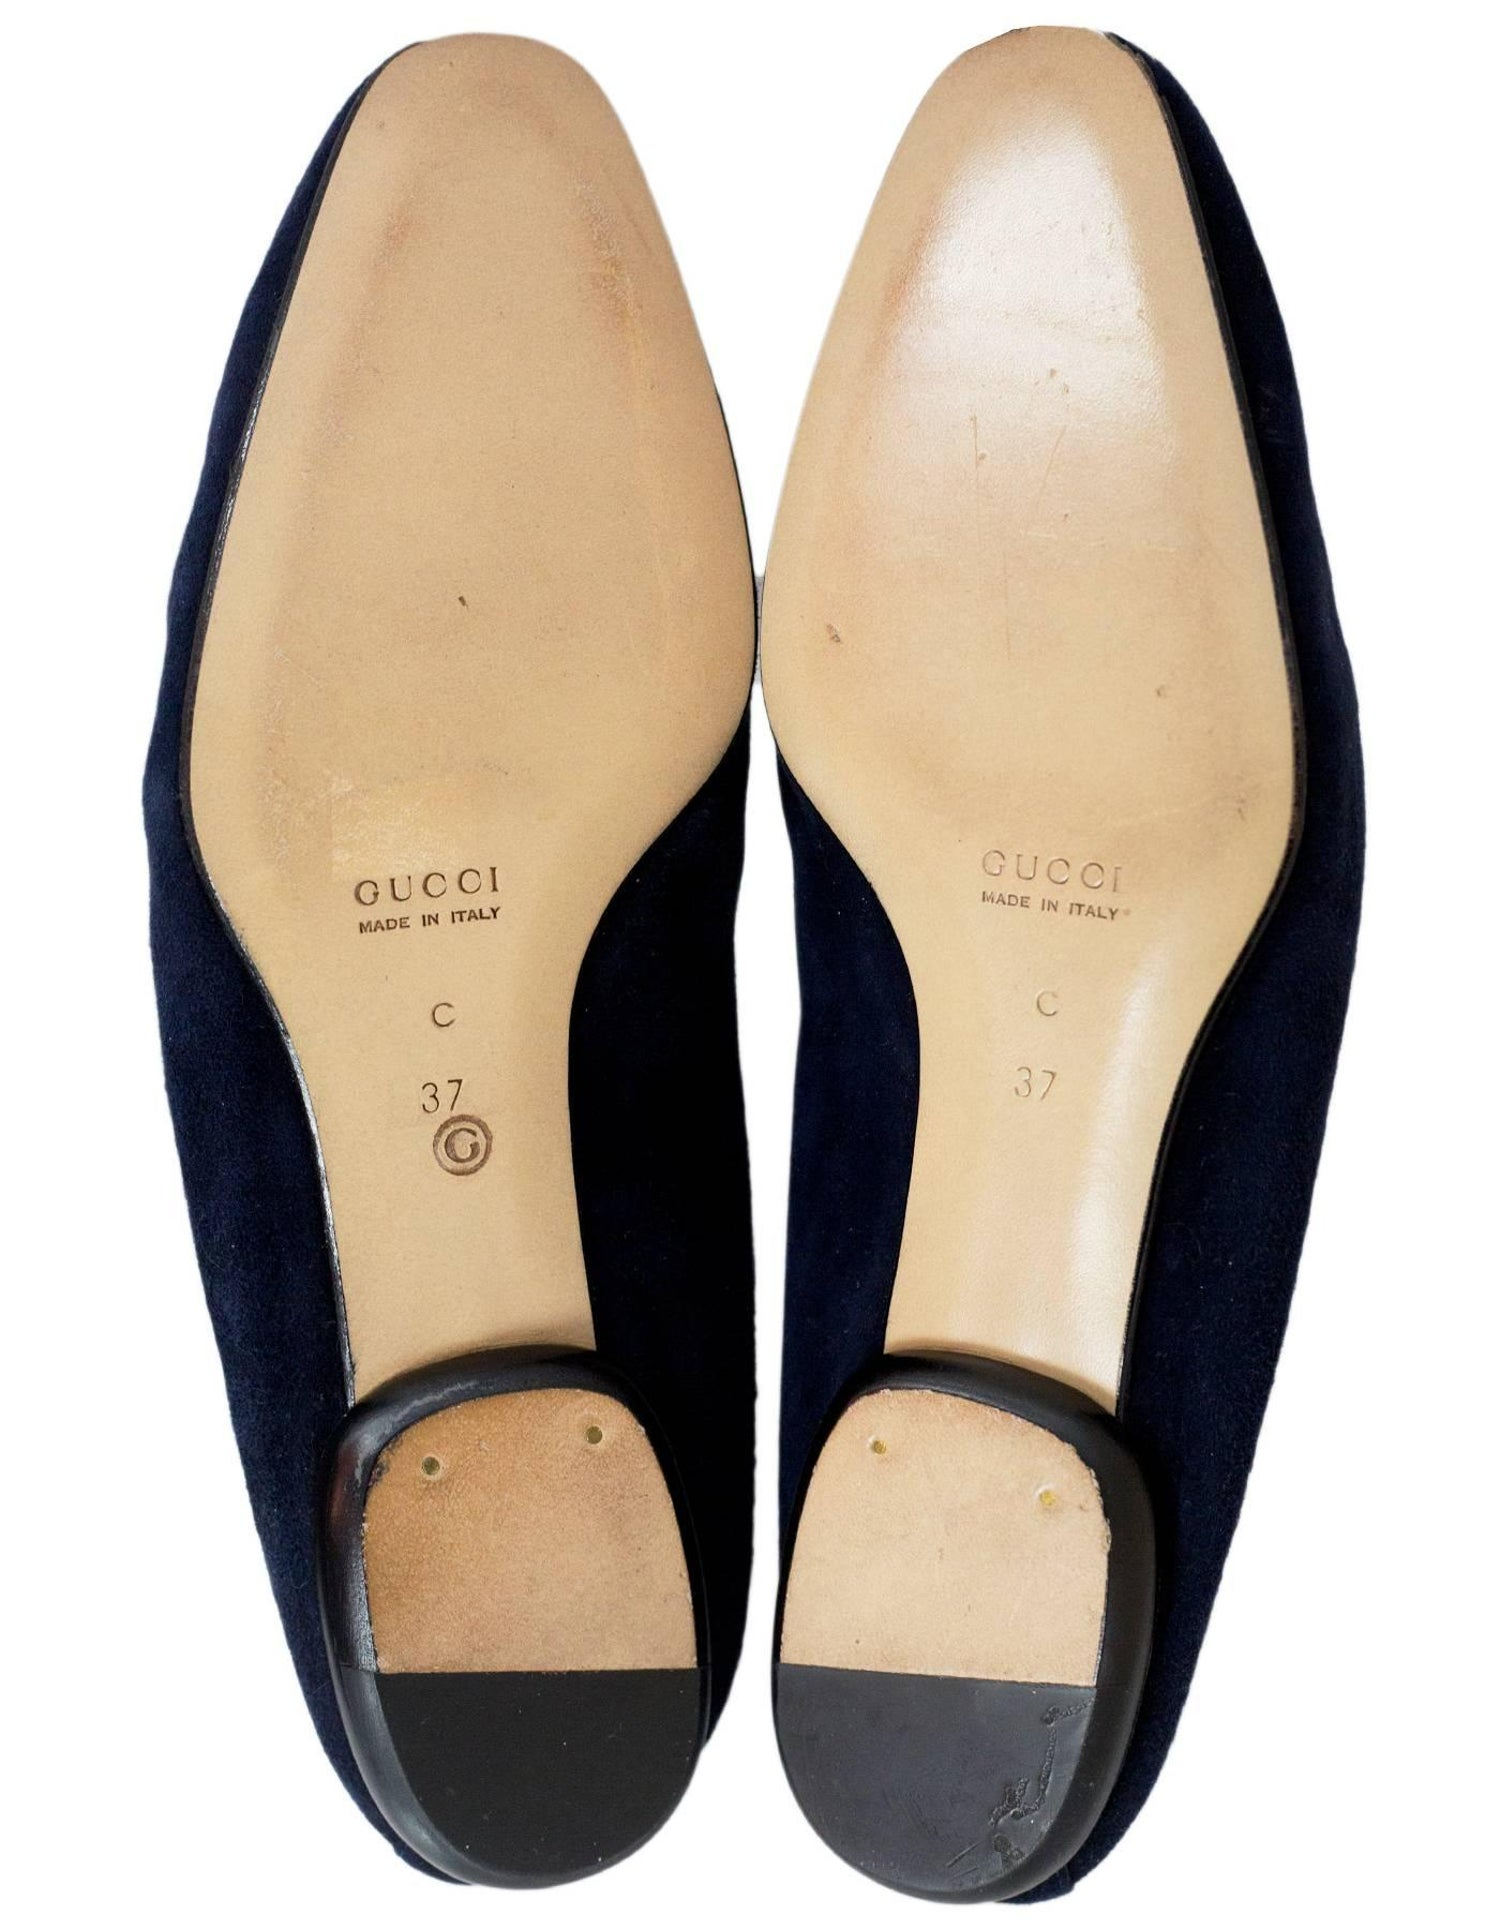 1748719f802 Gucci Navy Suede Horsebit Loafers Size 37C New For Sale at 1stdibs